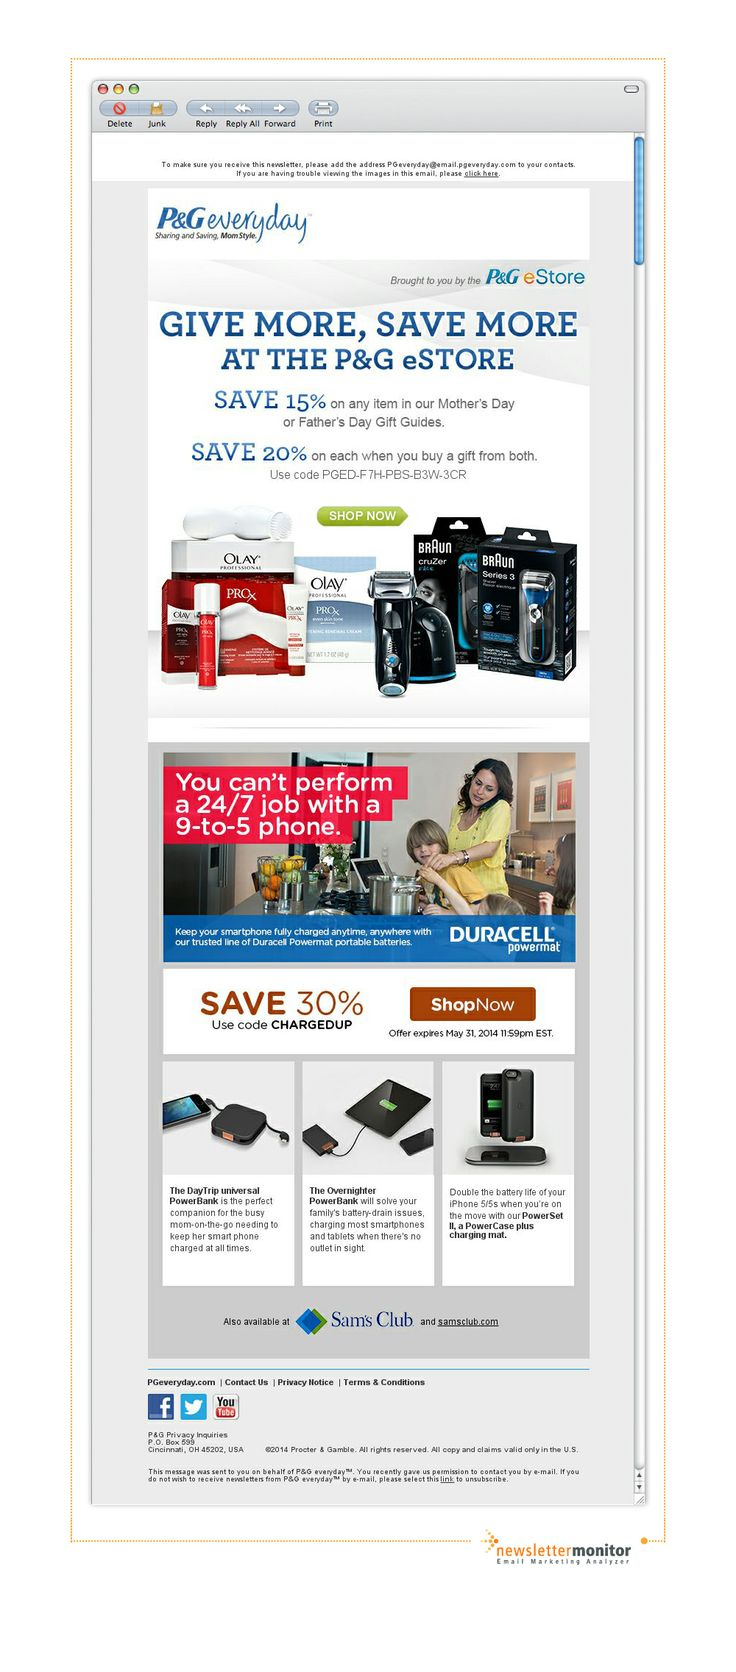 Brand: P&G | Subject: Save up to 30% this Mother's & Father's Day